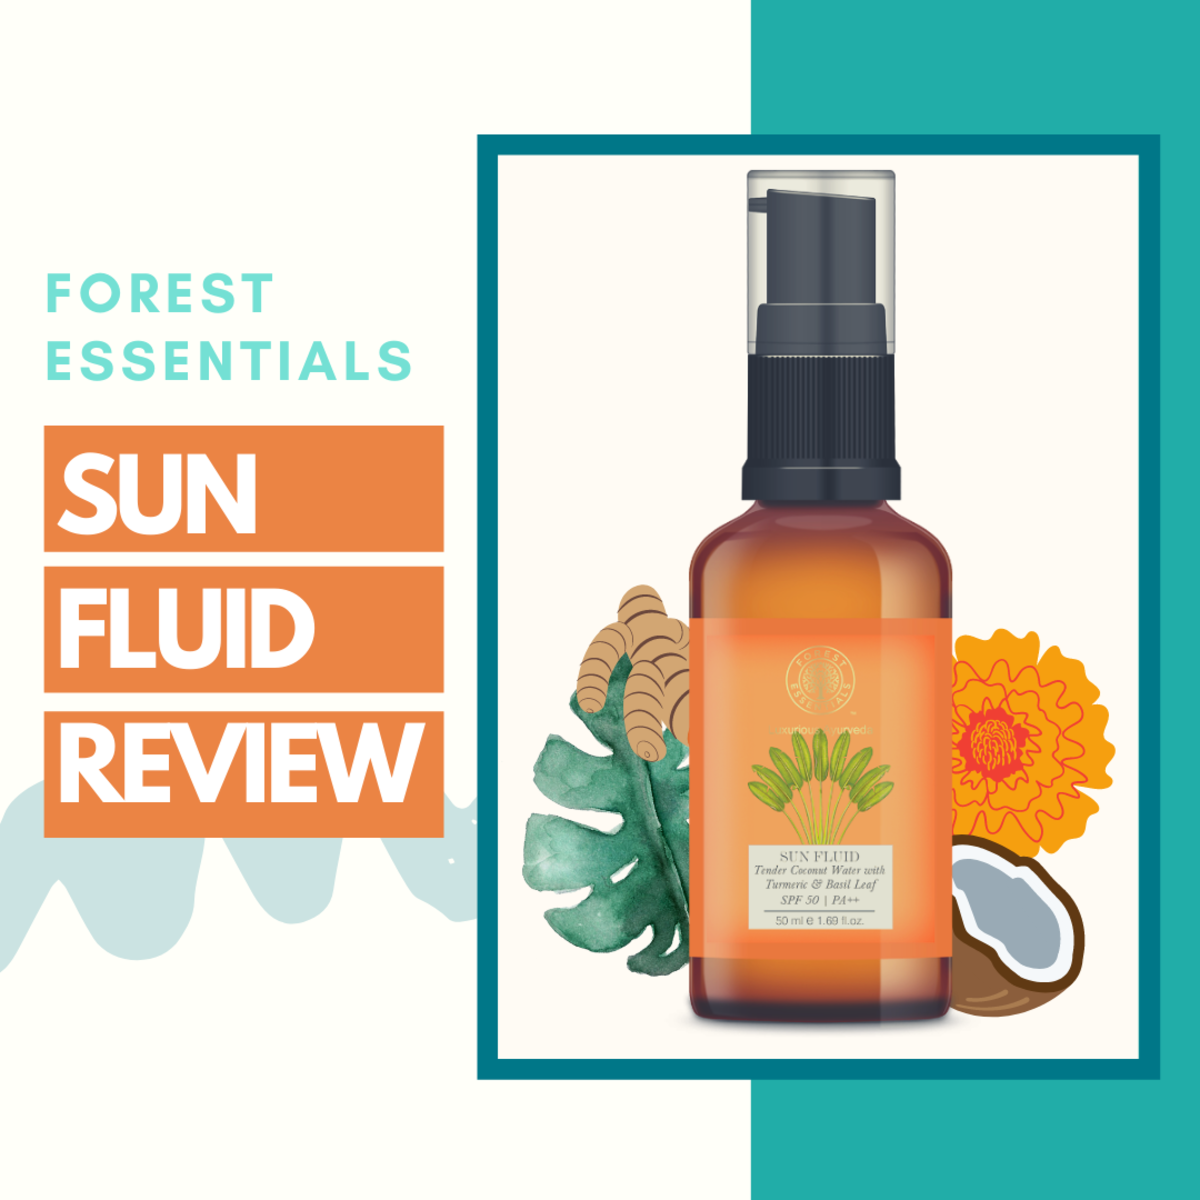 forest-essentials-sun-fluid-tender-coconut-water-with-turmeric-basil-leaf-spf-50-pa-review